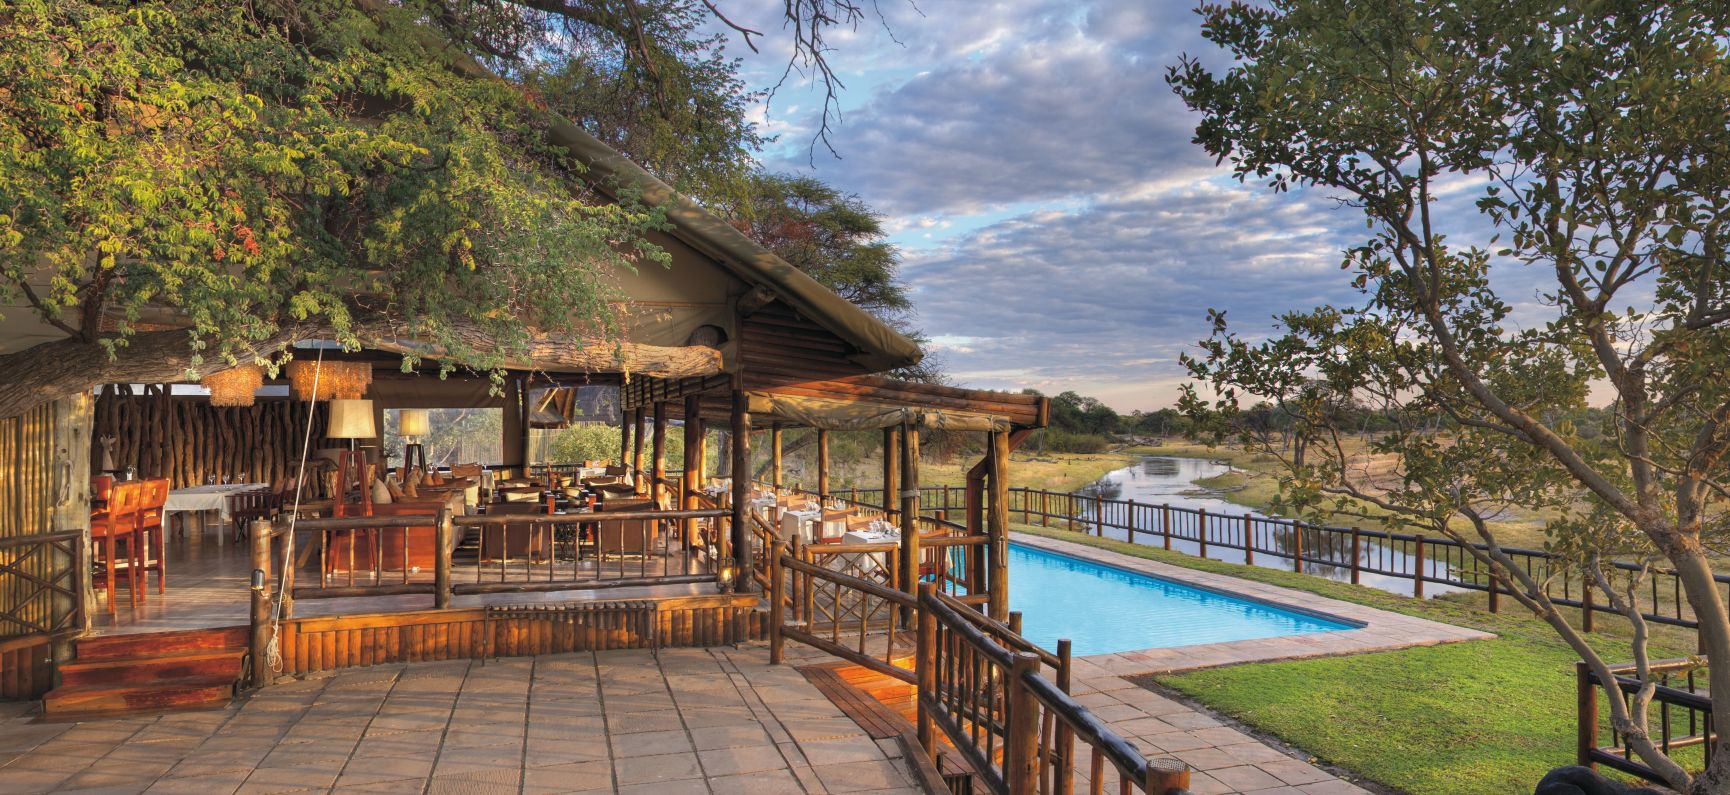 Botswana's acclaimed Belmond Savute Elephant Lodge has reopened as a timeless explorer's lodge, connecting its guests to nature like never before.